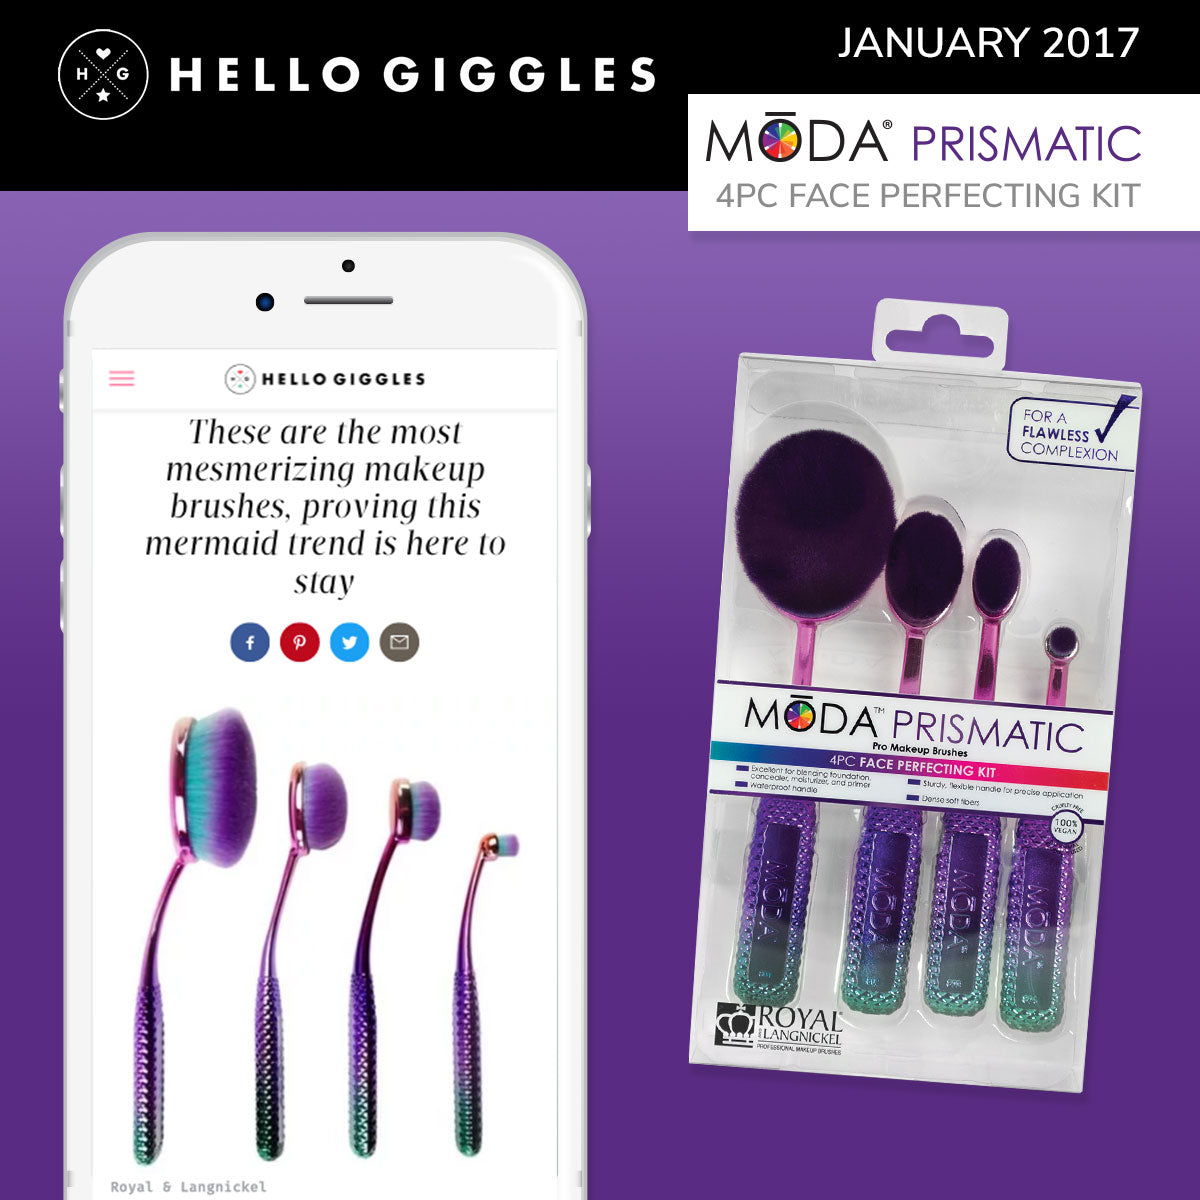 Hello Giggles Spotlight on our Moda Prismatic Face Perfecting Kit